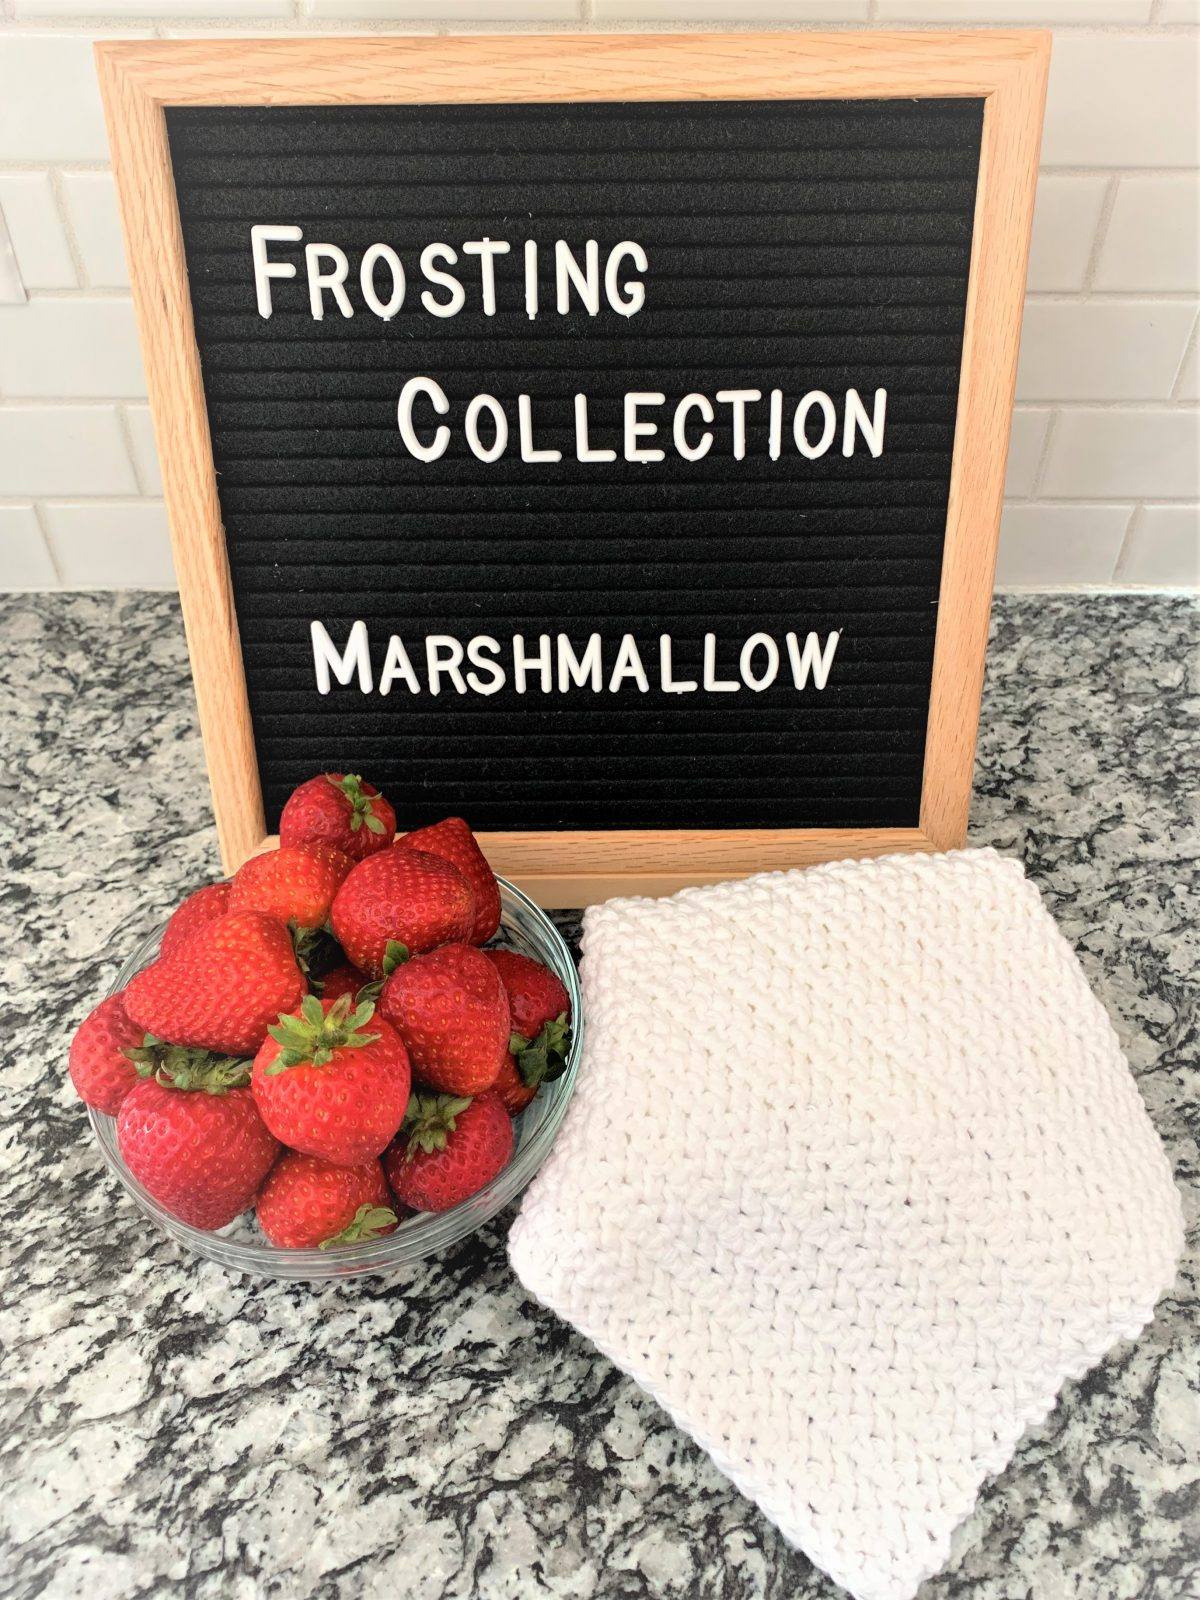 Free Crochet Dishcloth Pattern – Frosting Collection – Marshmallow – Part 3